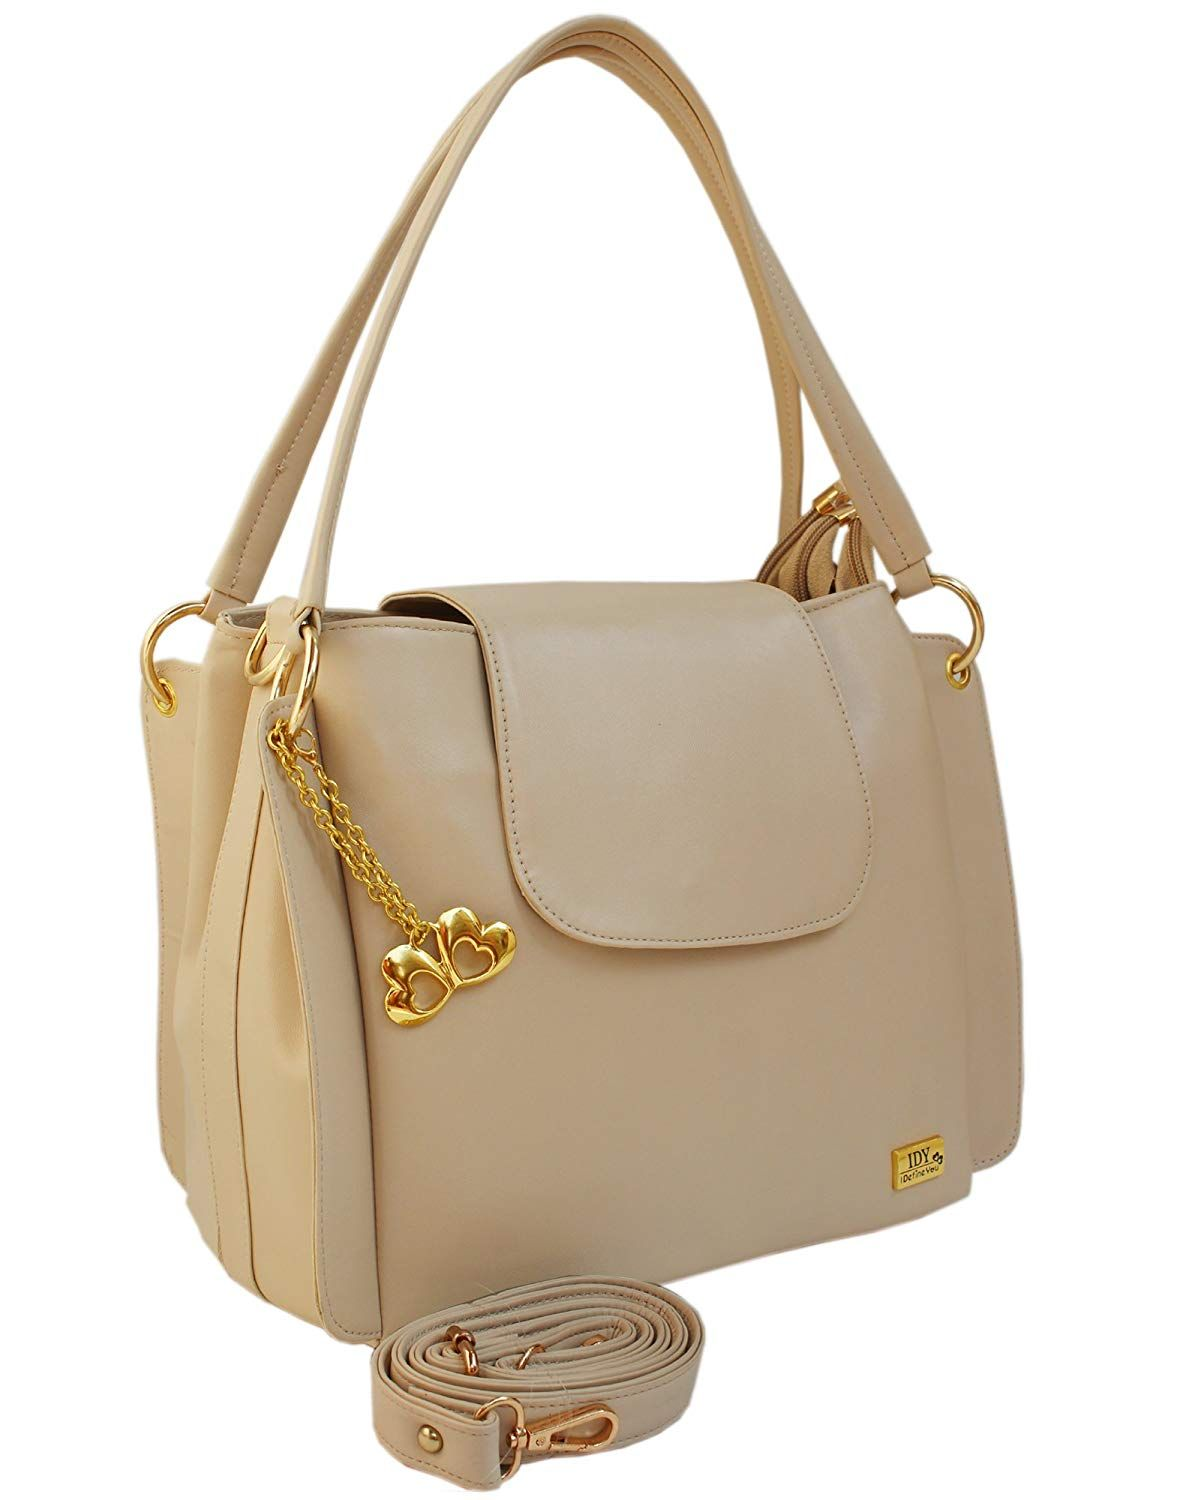 I Define You Latest Trend Cream Color Party Wear Handbag   Sling bag For  Girls and Women s from Rs 979.00  color  cream  define  handbag  latest   party   ... 9721f9286d